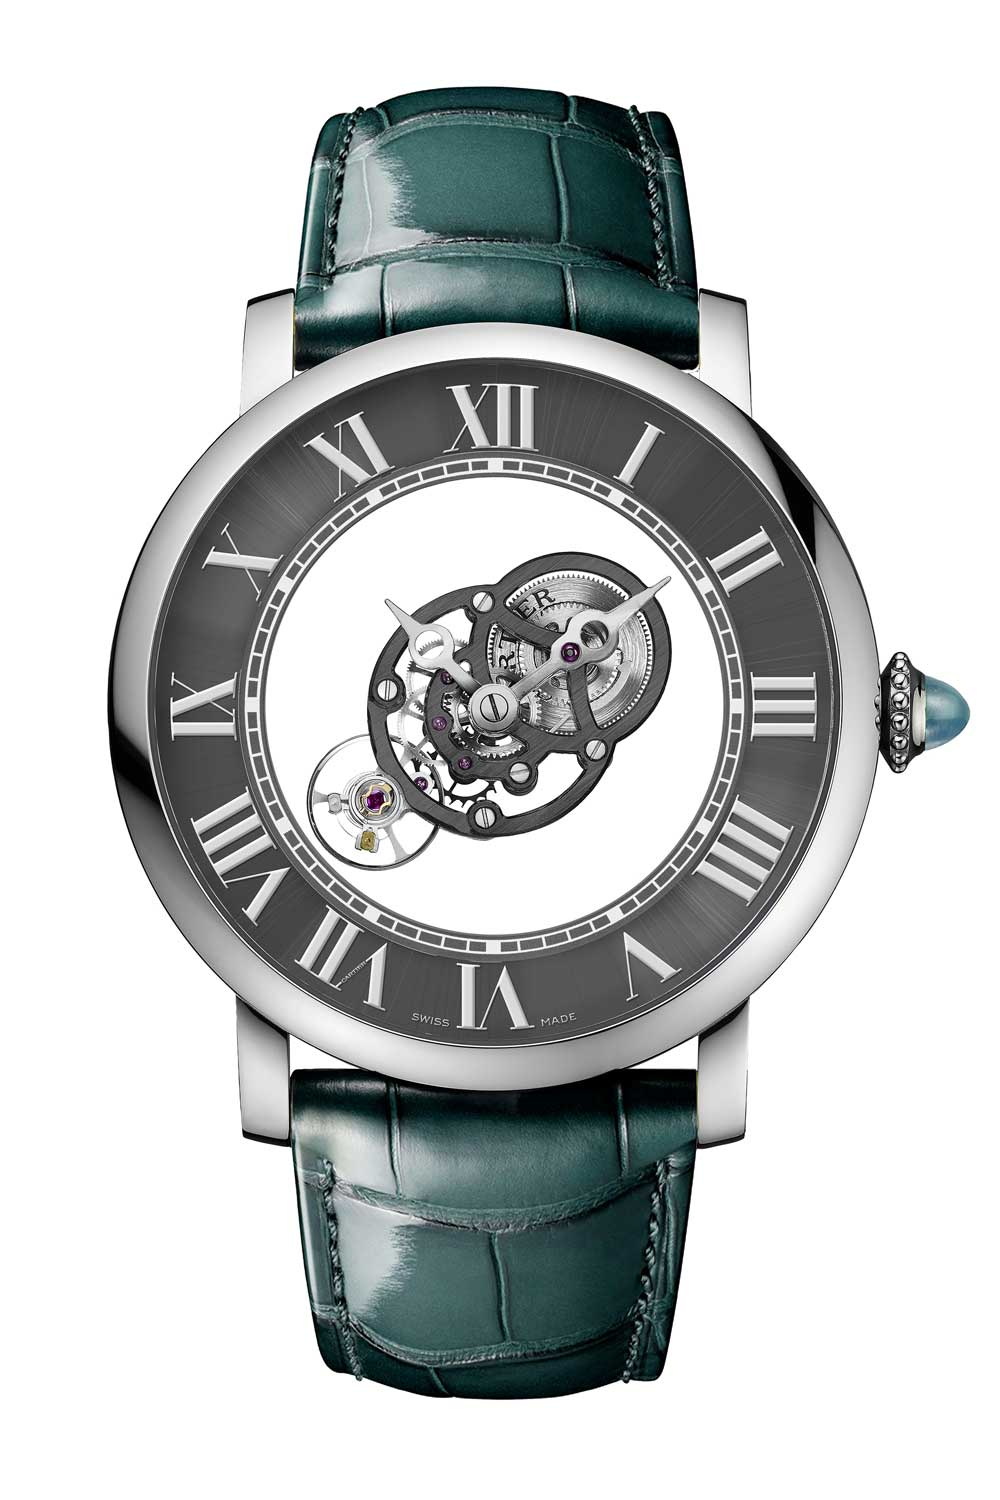 The Rotonde de Cartier Astromysterious features a movement seemingly suspended in space along with the watch's hour and minute hands.